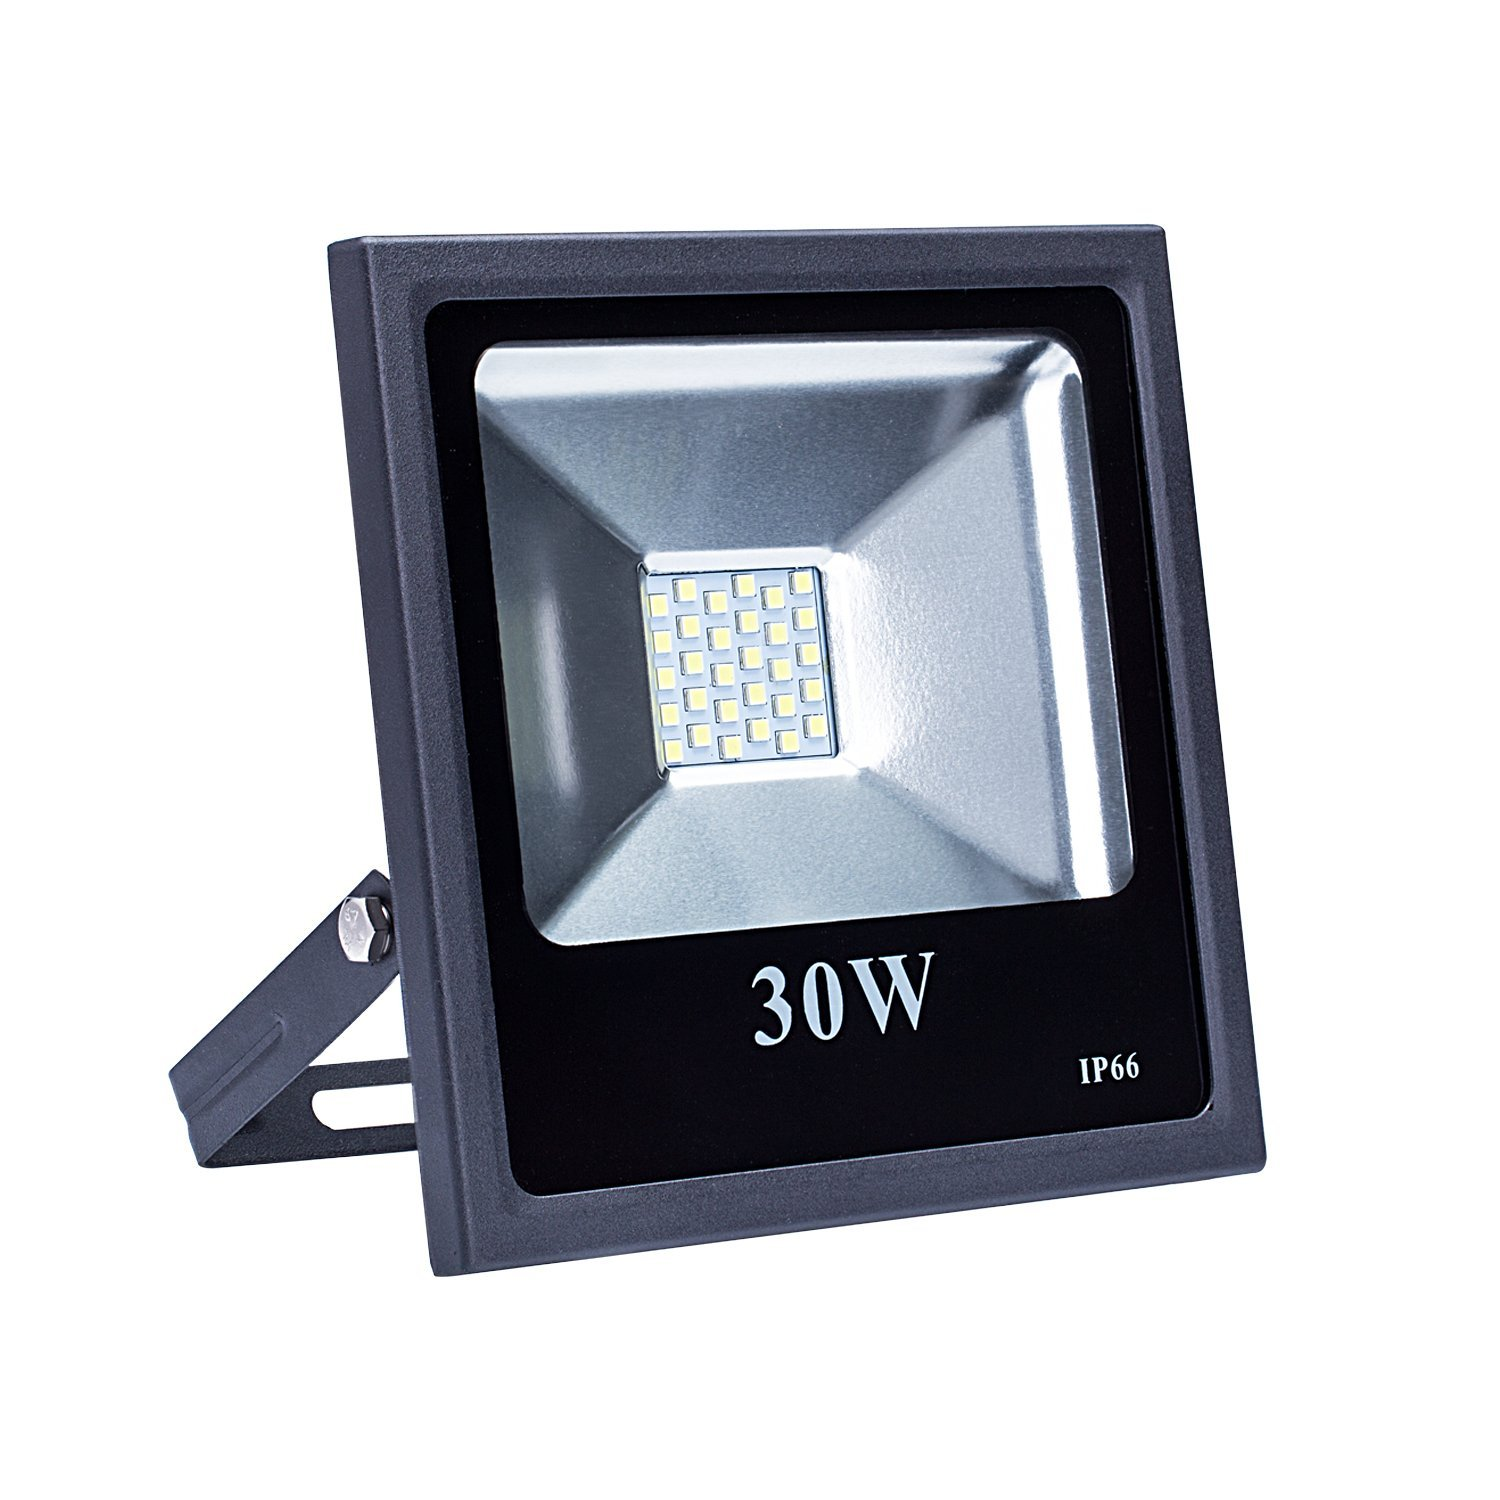 Brightown Outdoor LED Security Flood Lights-30W LED Daylight White 6000K(150W Halogen Bulb Equivalent), Waterpoof